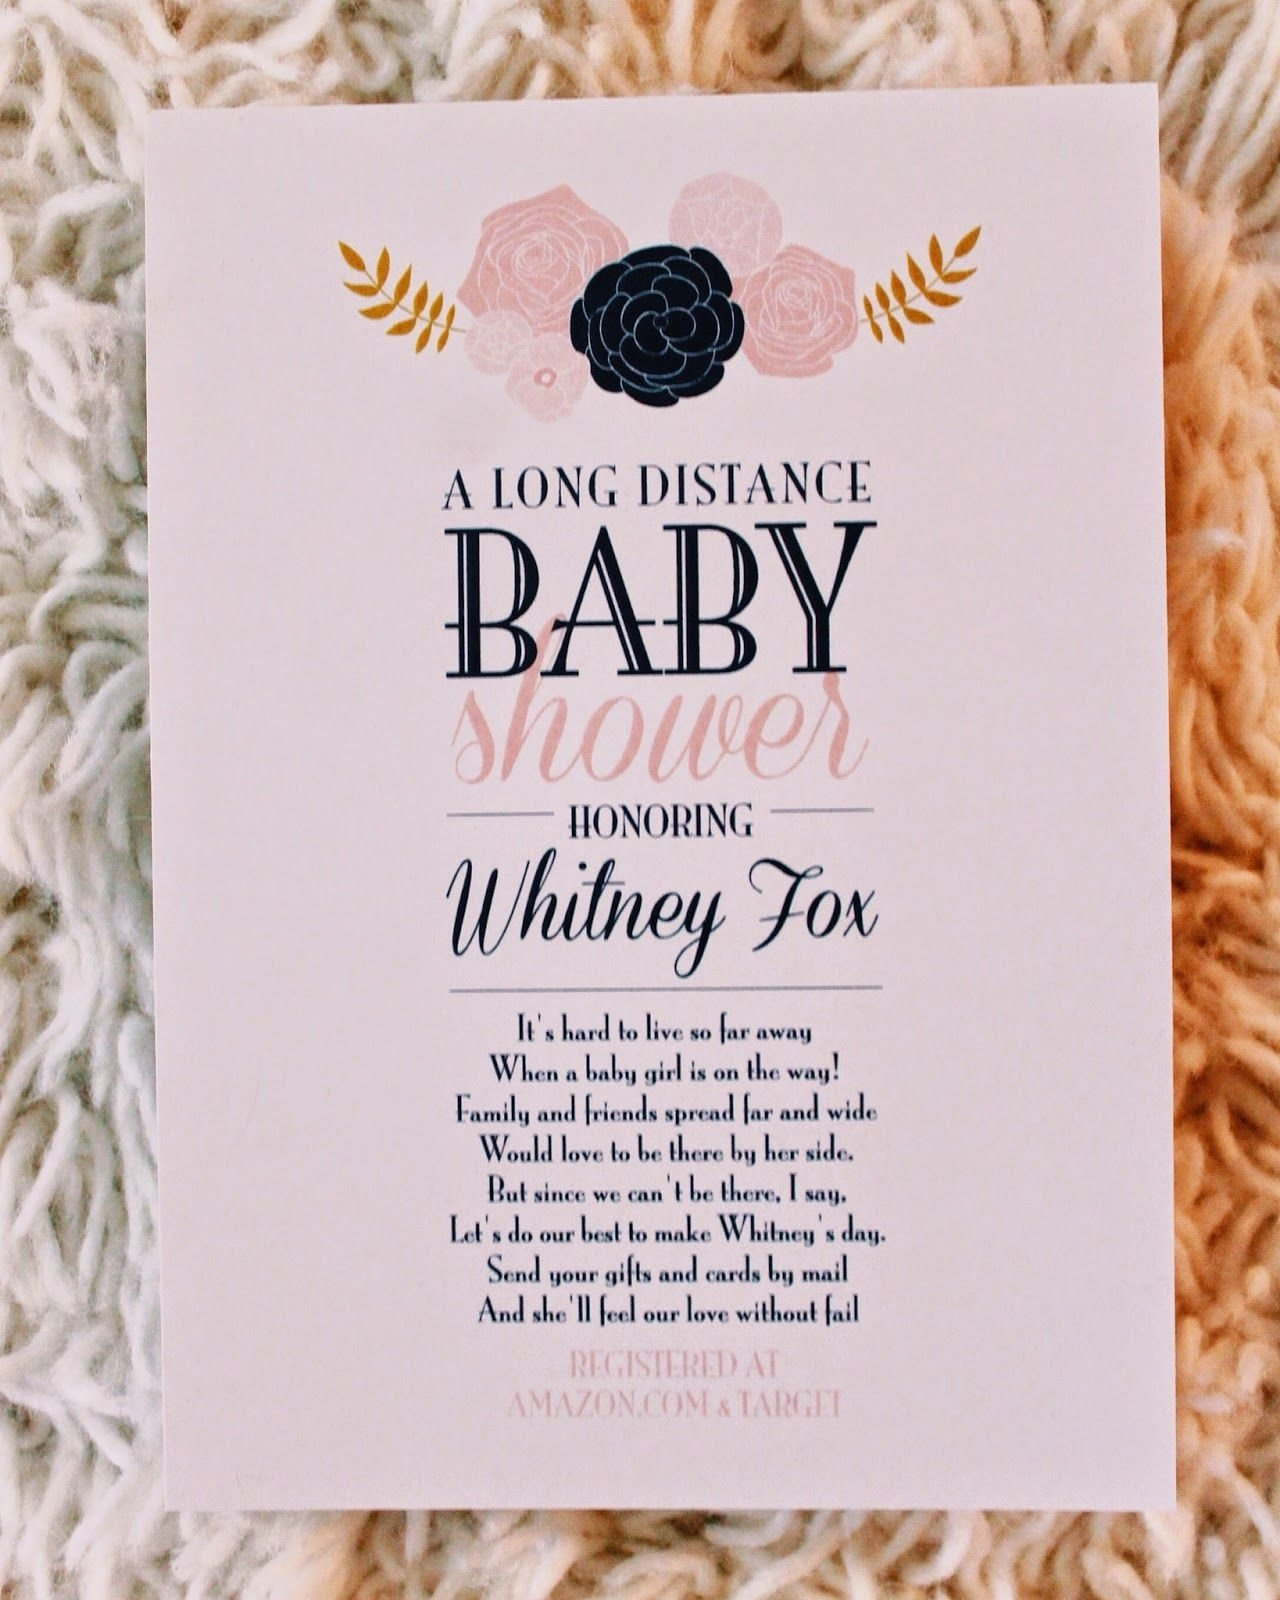 mother's day baby shower ideas you will love | long distance